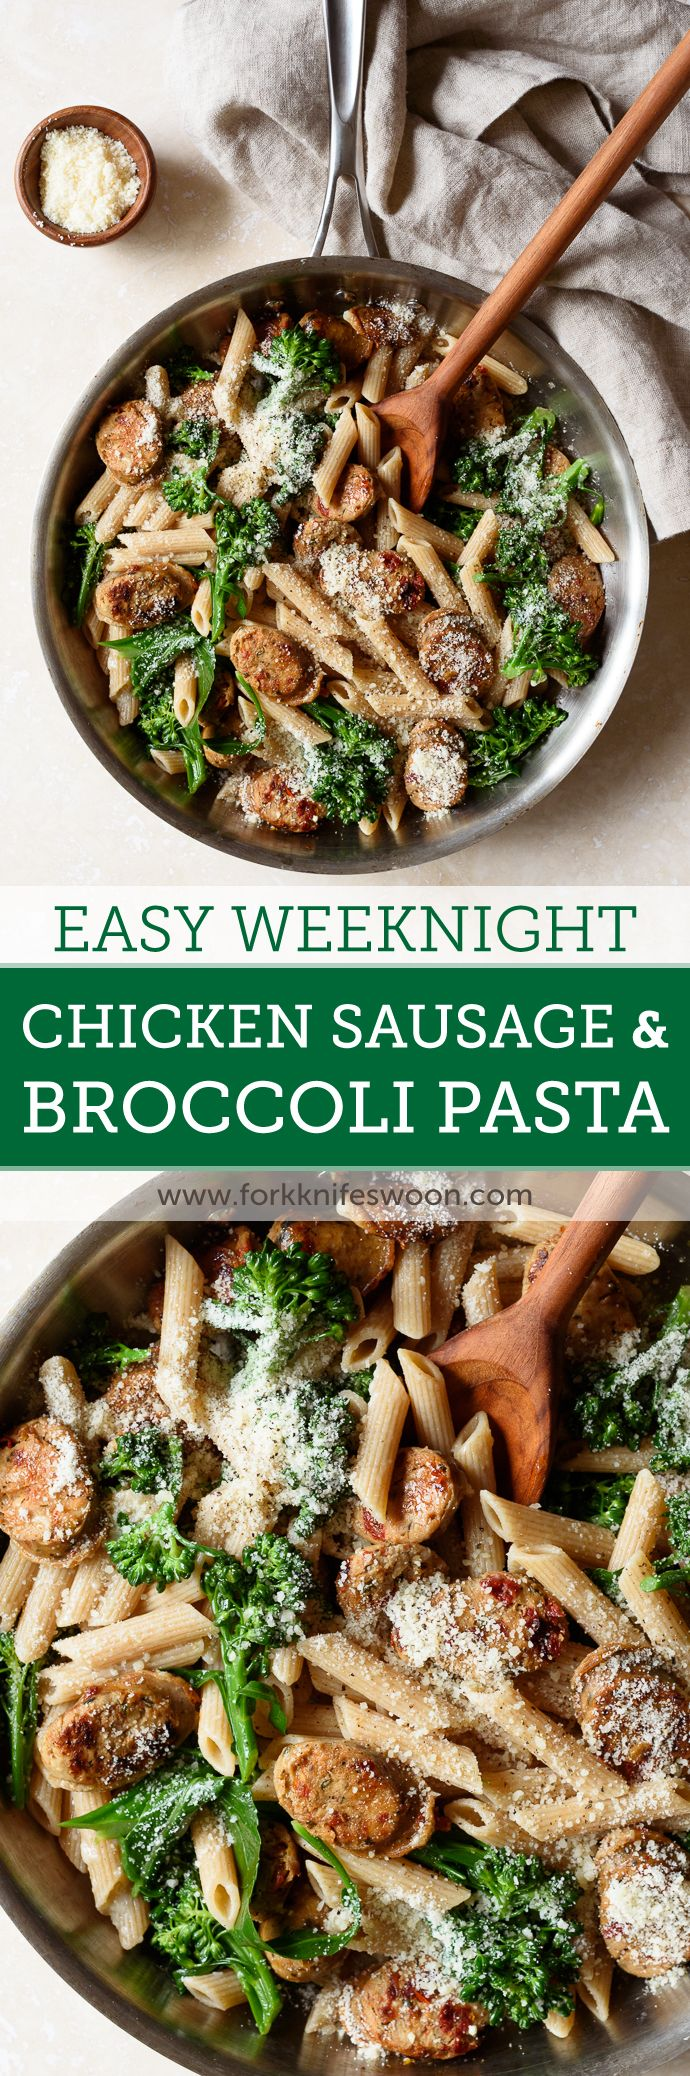 Whole Wheat Pasta with Broccoli and Chicken Sausage | via forkknifeswoon.com